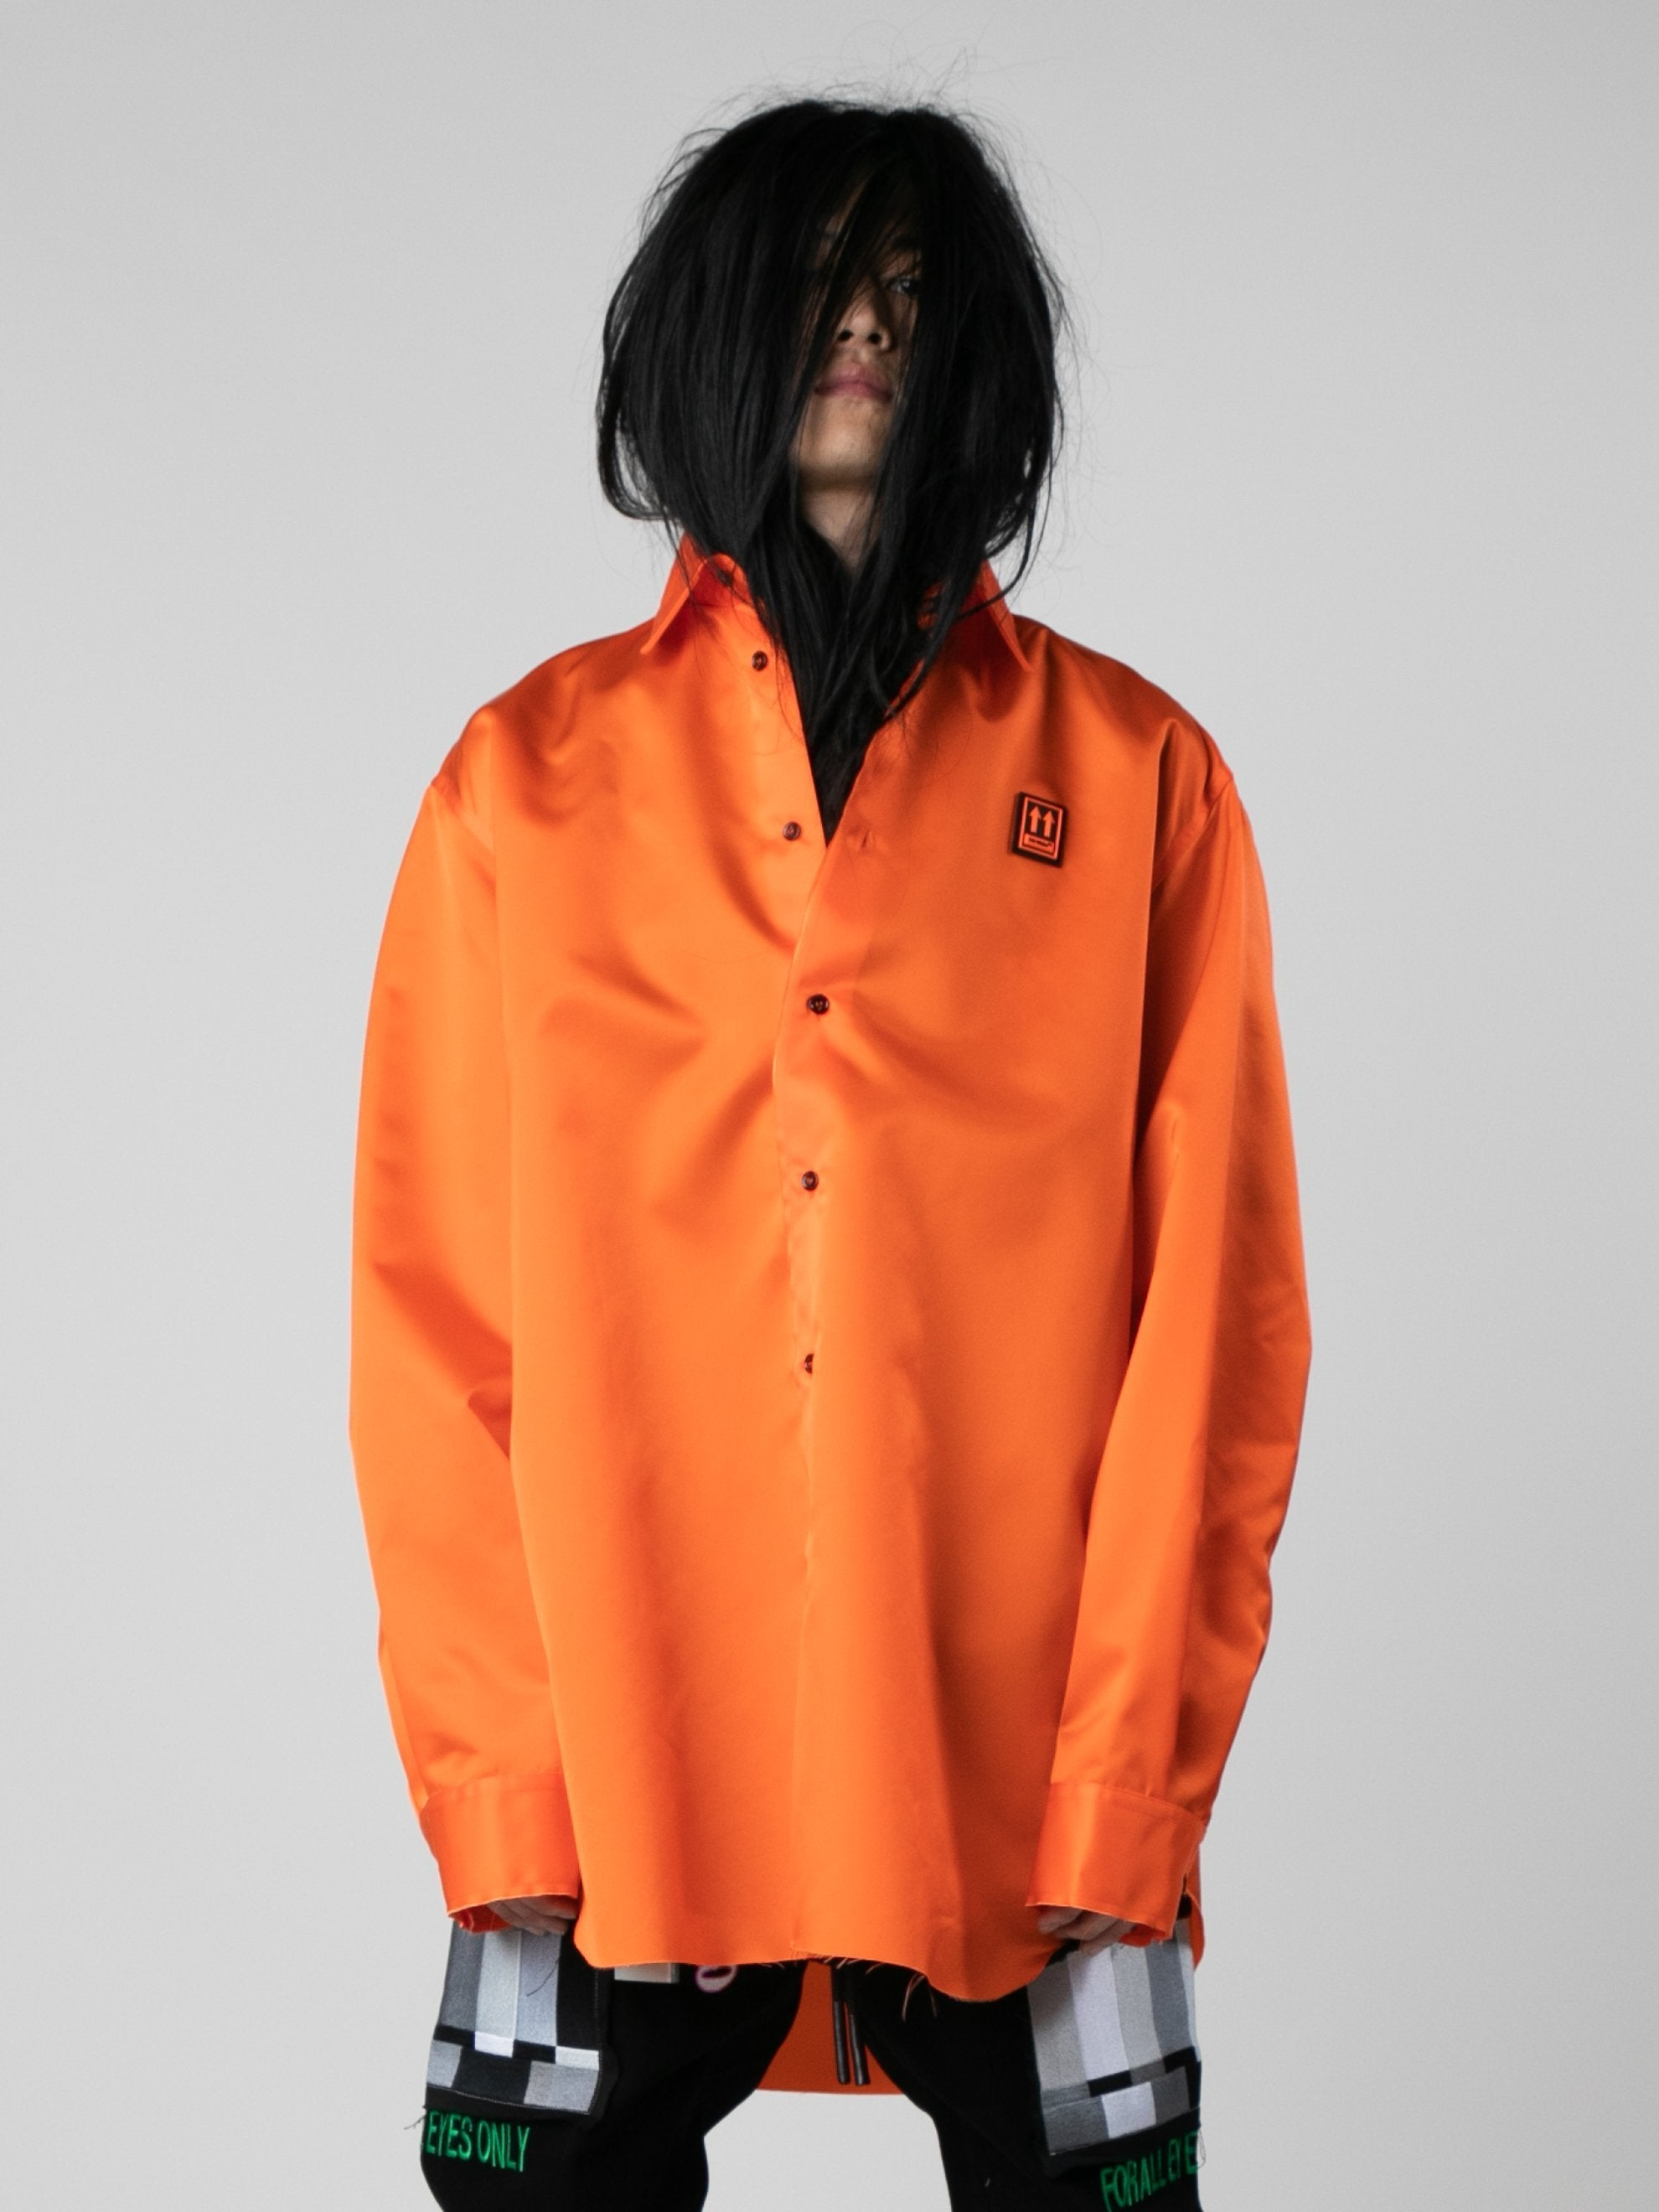 Orange / Black Scaffolding Over Shirt 2